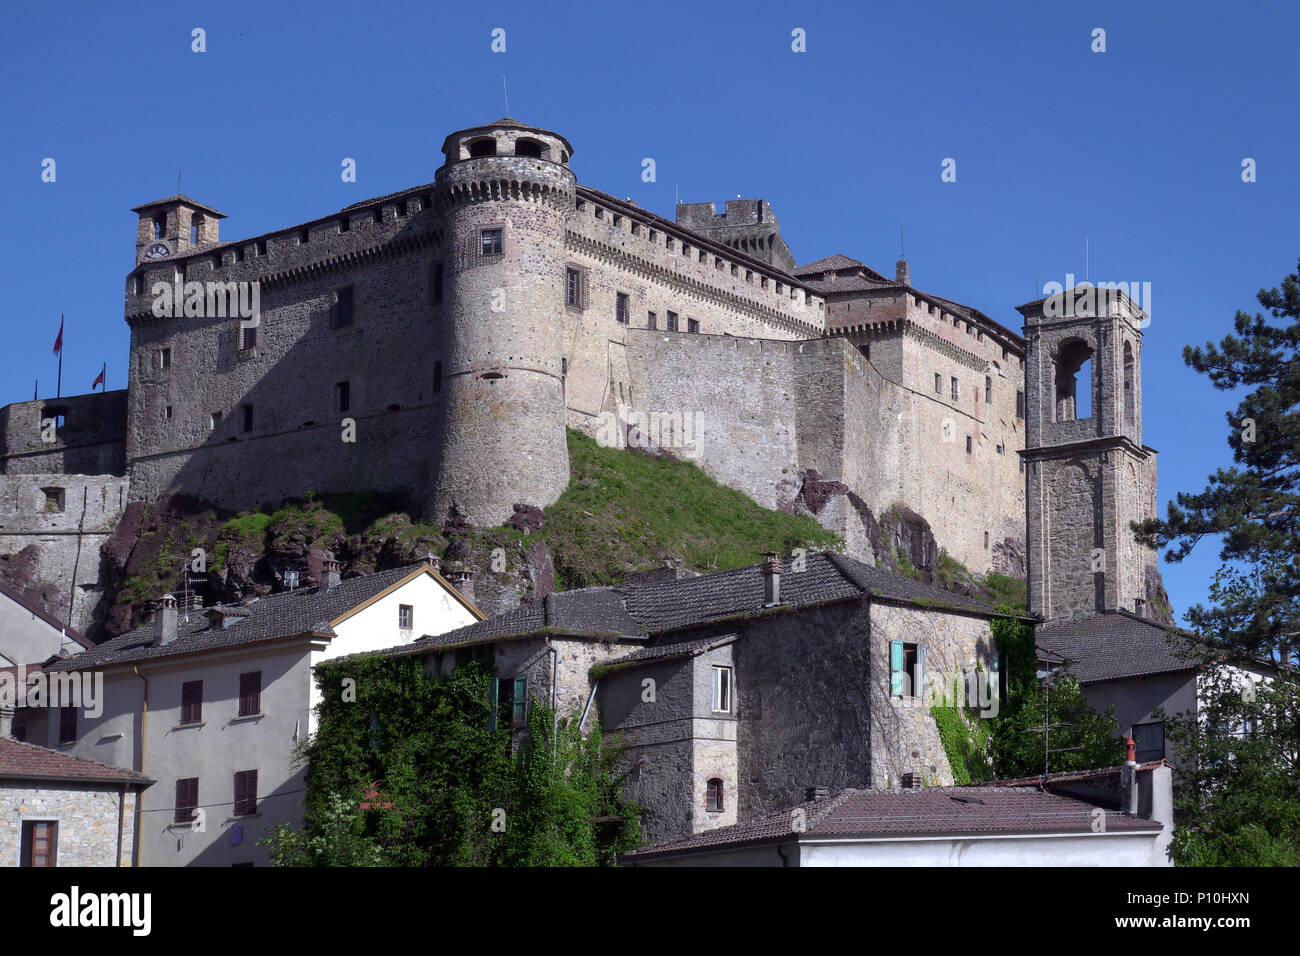 Aerial view of Bardi castle, Parma, Italy Stock Photo